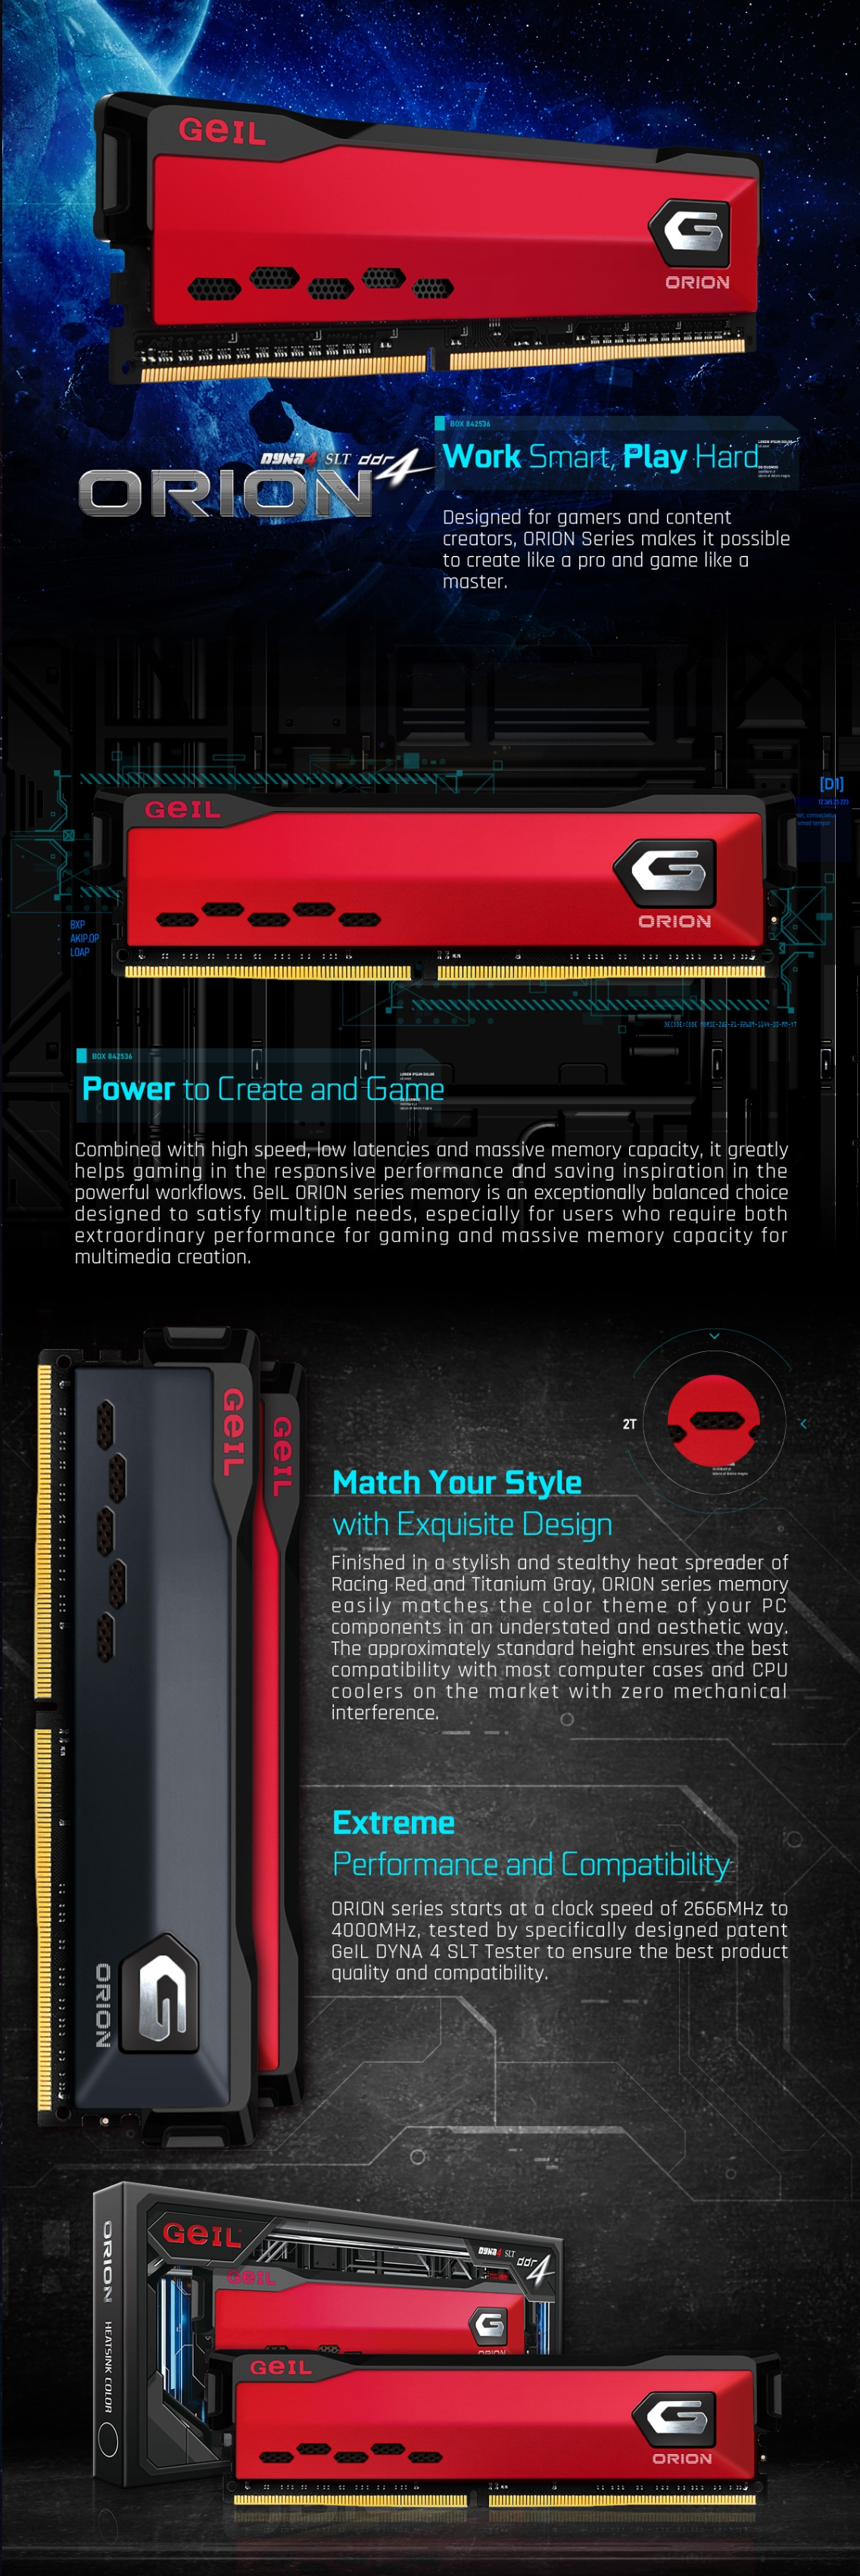 A large marketing image providing additional information about the product GeIL 32GB Kit (2x16GB) DDR4 Orion Rust Red C16 3000Mhz - Additional alt info not provided